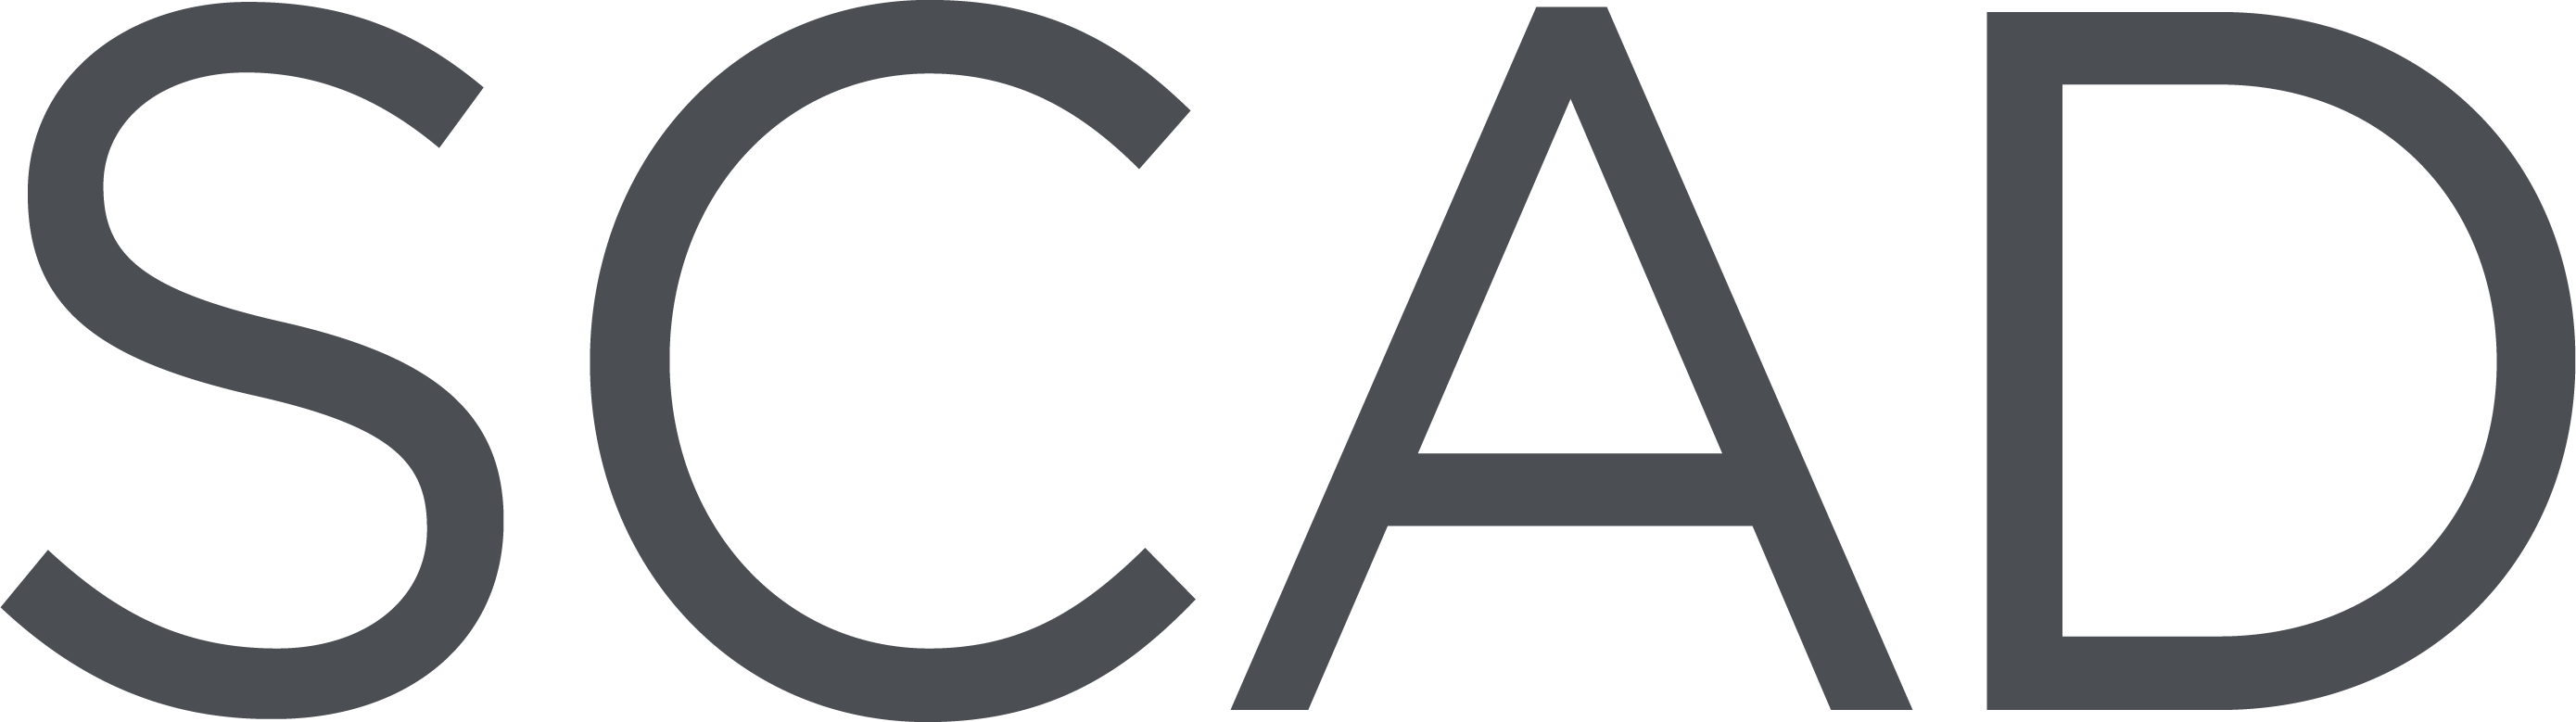 SCAD Logo [Savannah College of Art and Design] png